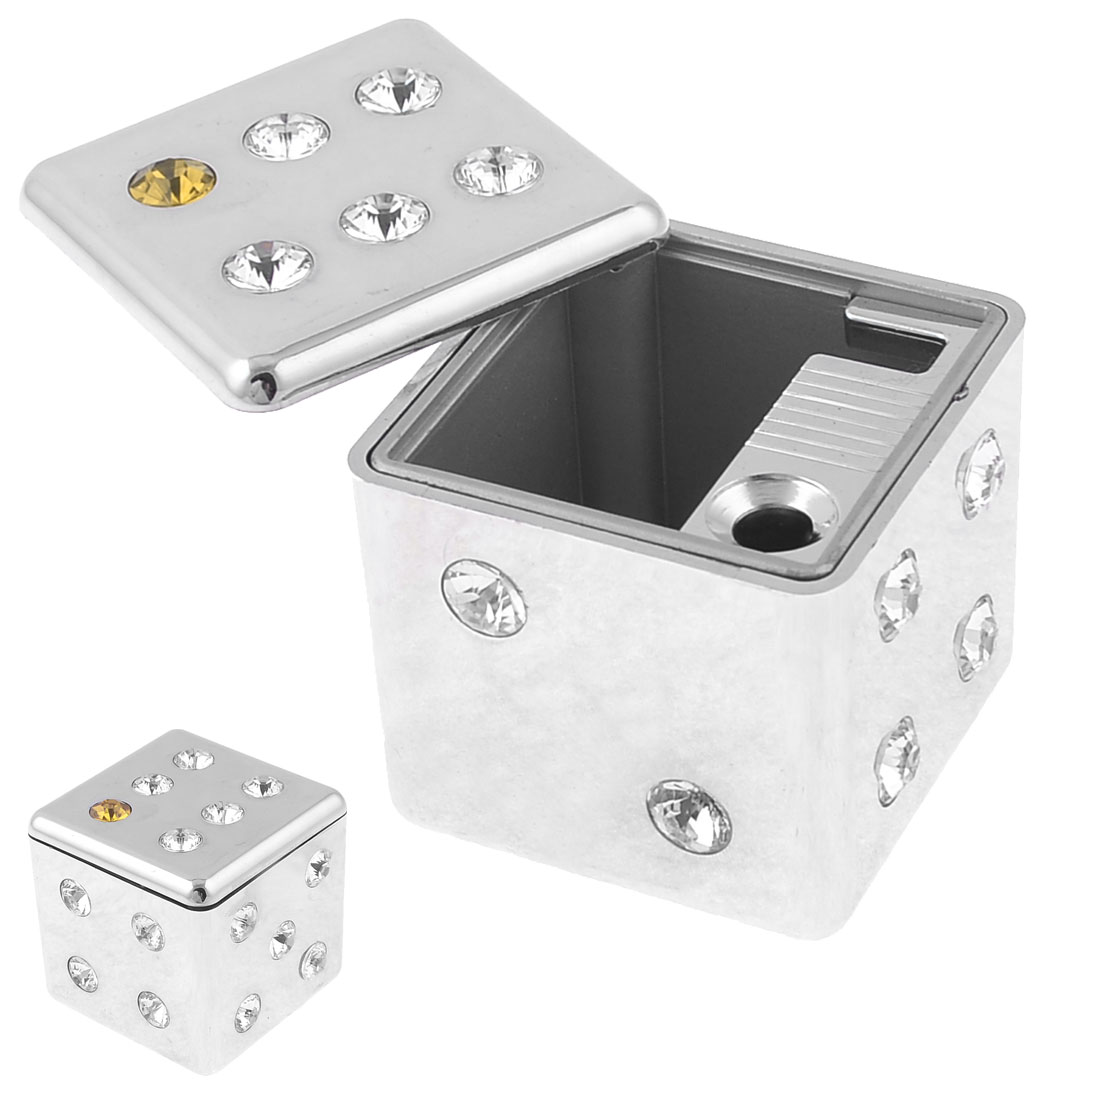 5.5 x 5.5 x 5.5cm Rhinestone Dice Design Spinner Metal Cigarette Cigar Ashtray